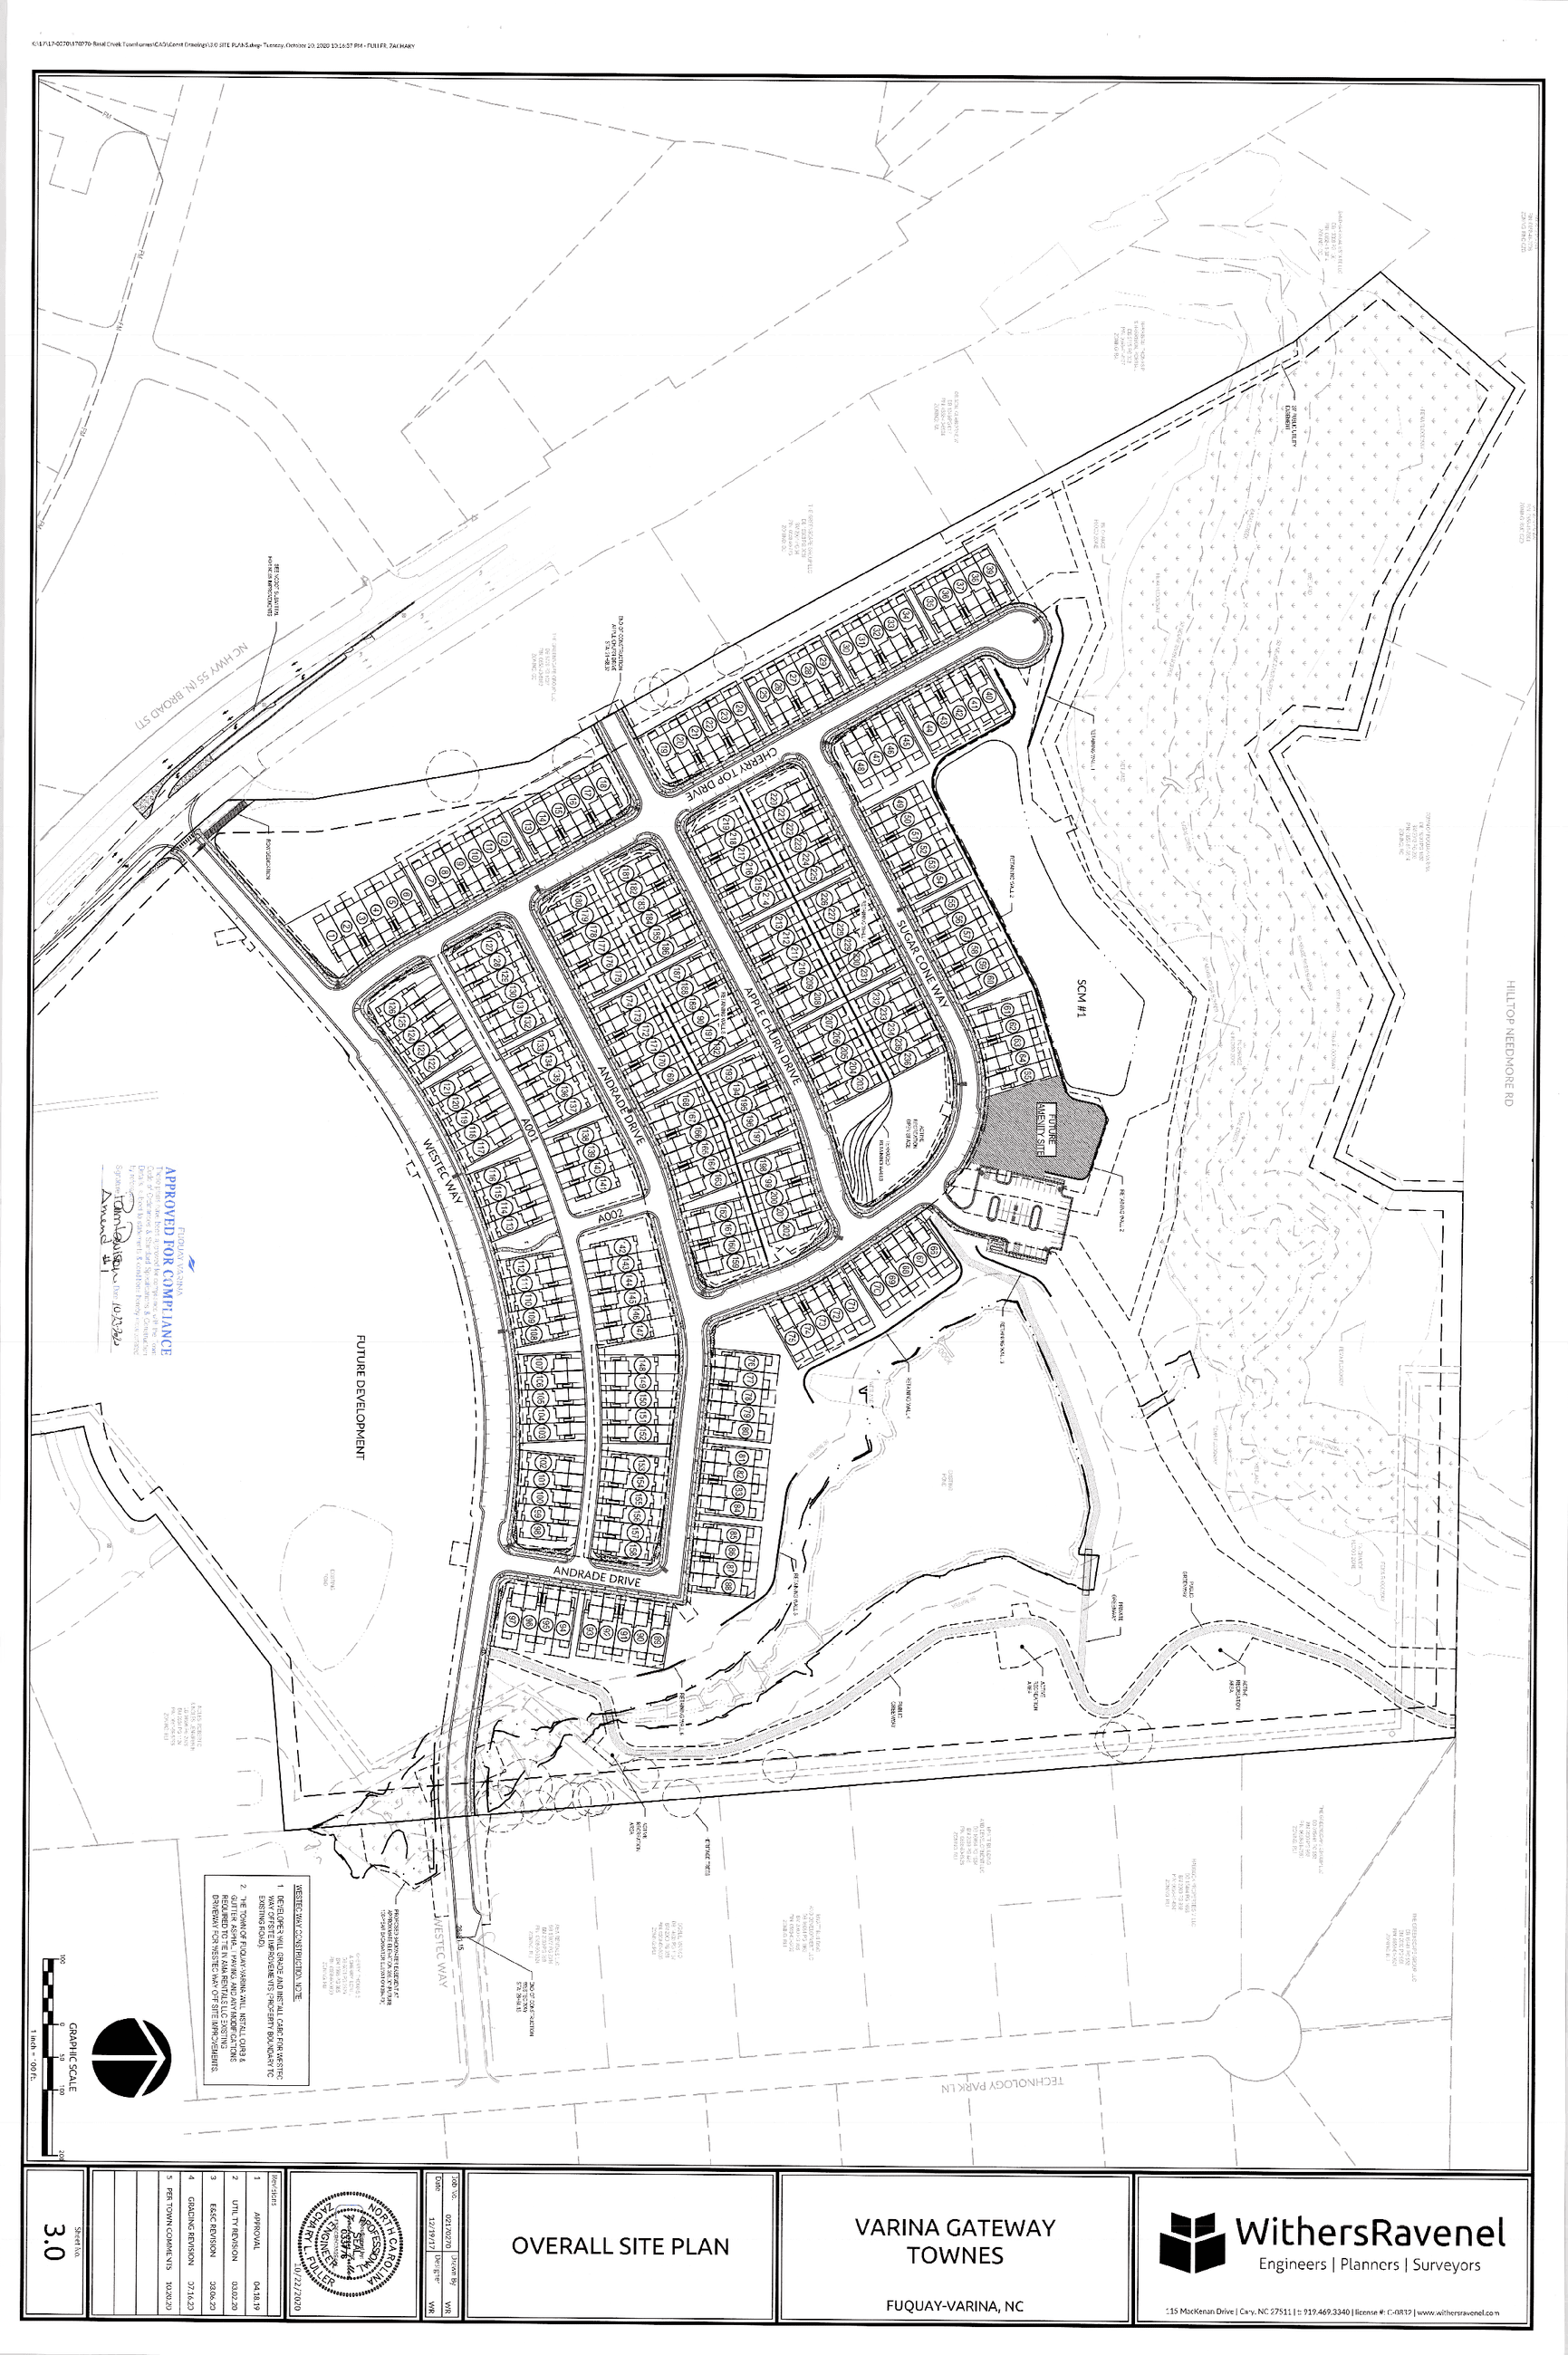 Varina Gate way Townes Site Layout